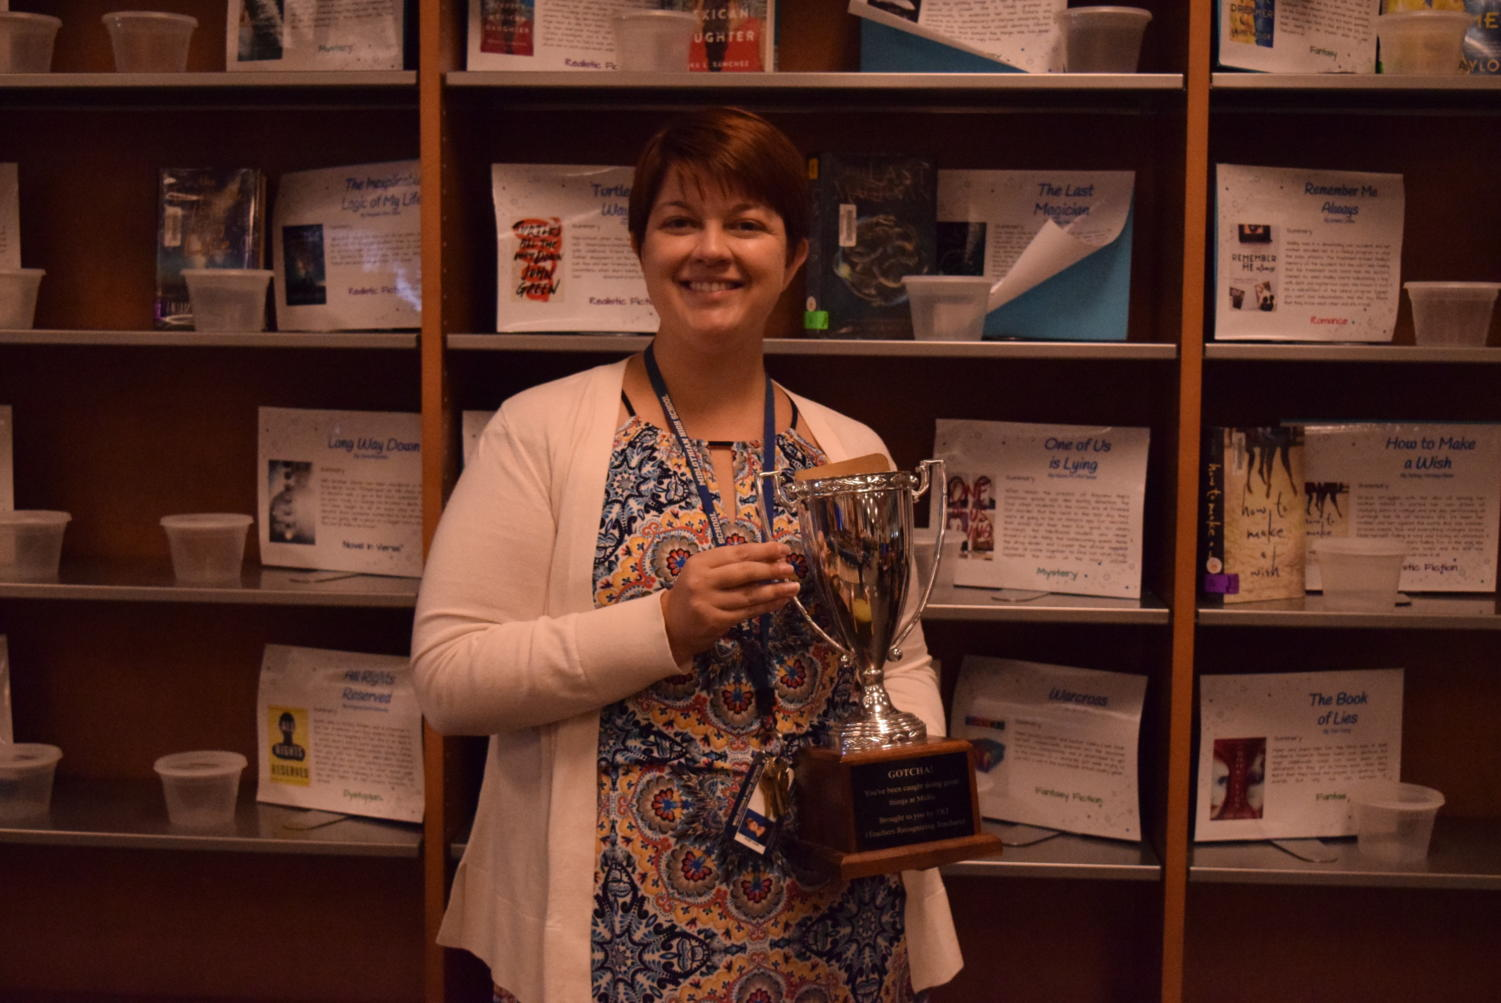 Congratulations, Ms. Emily Mazzanti, for receiving October's Teachers Recognizing Teachers Award.